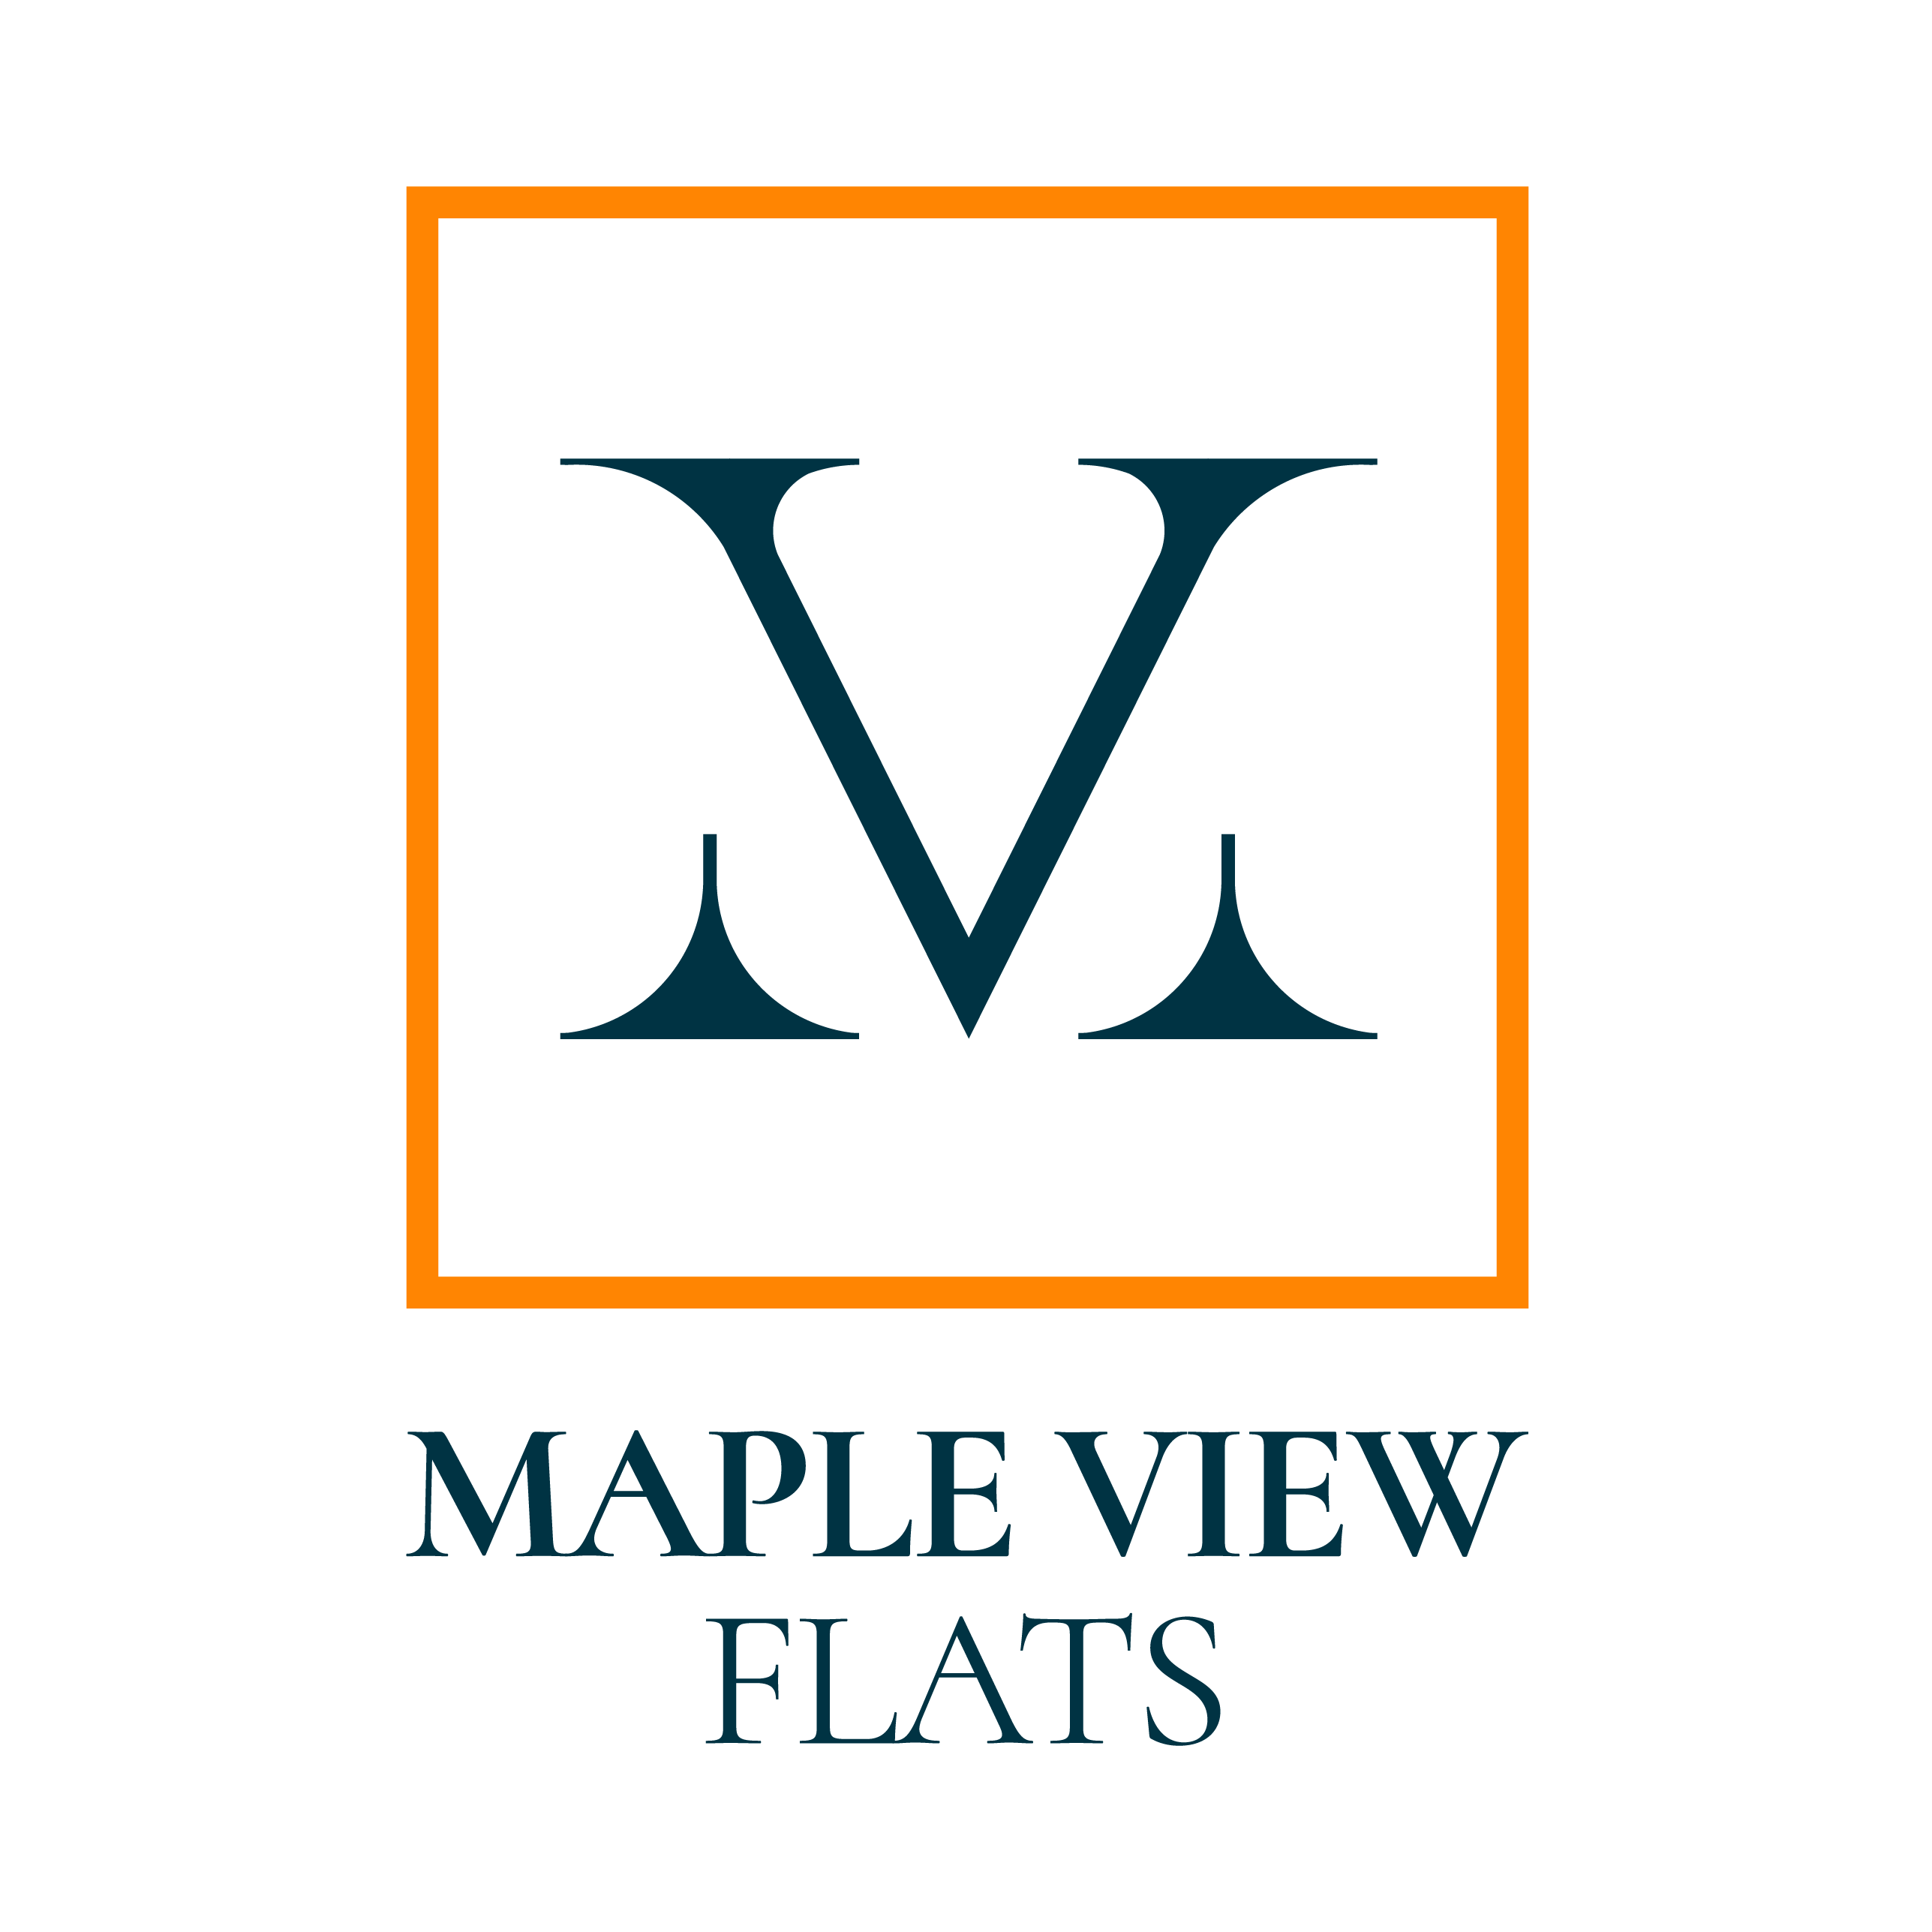 Maple View Flats